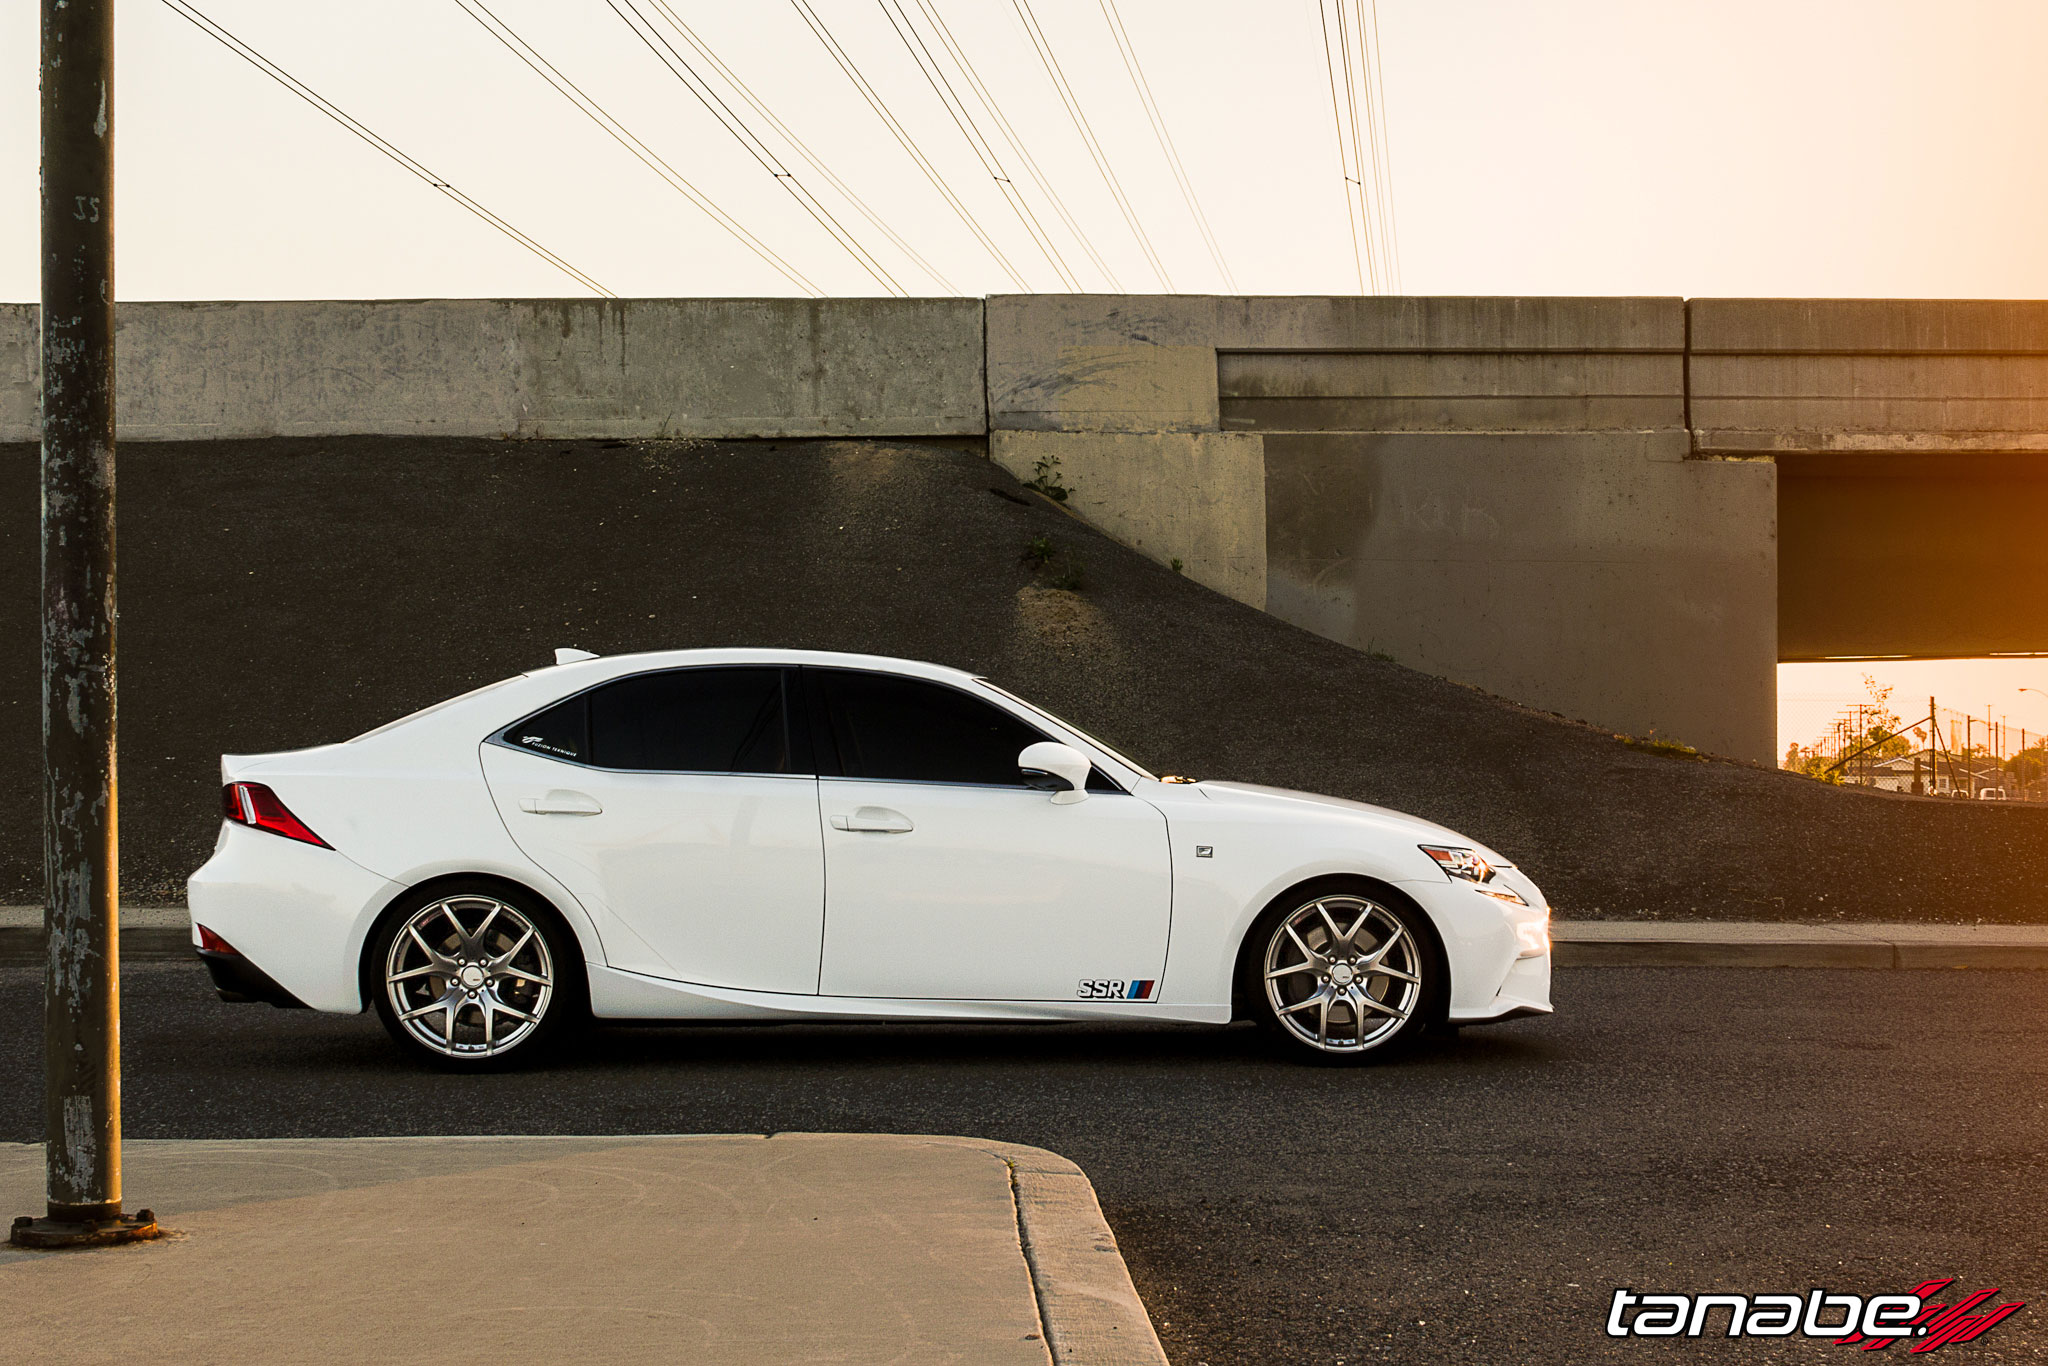 2014 Lexus Is350 F Sport On Tanabe Springs And Gtv03